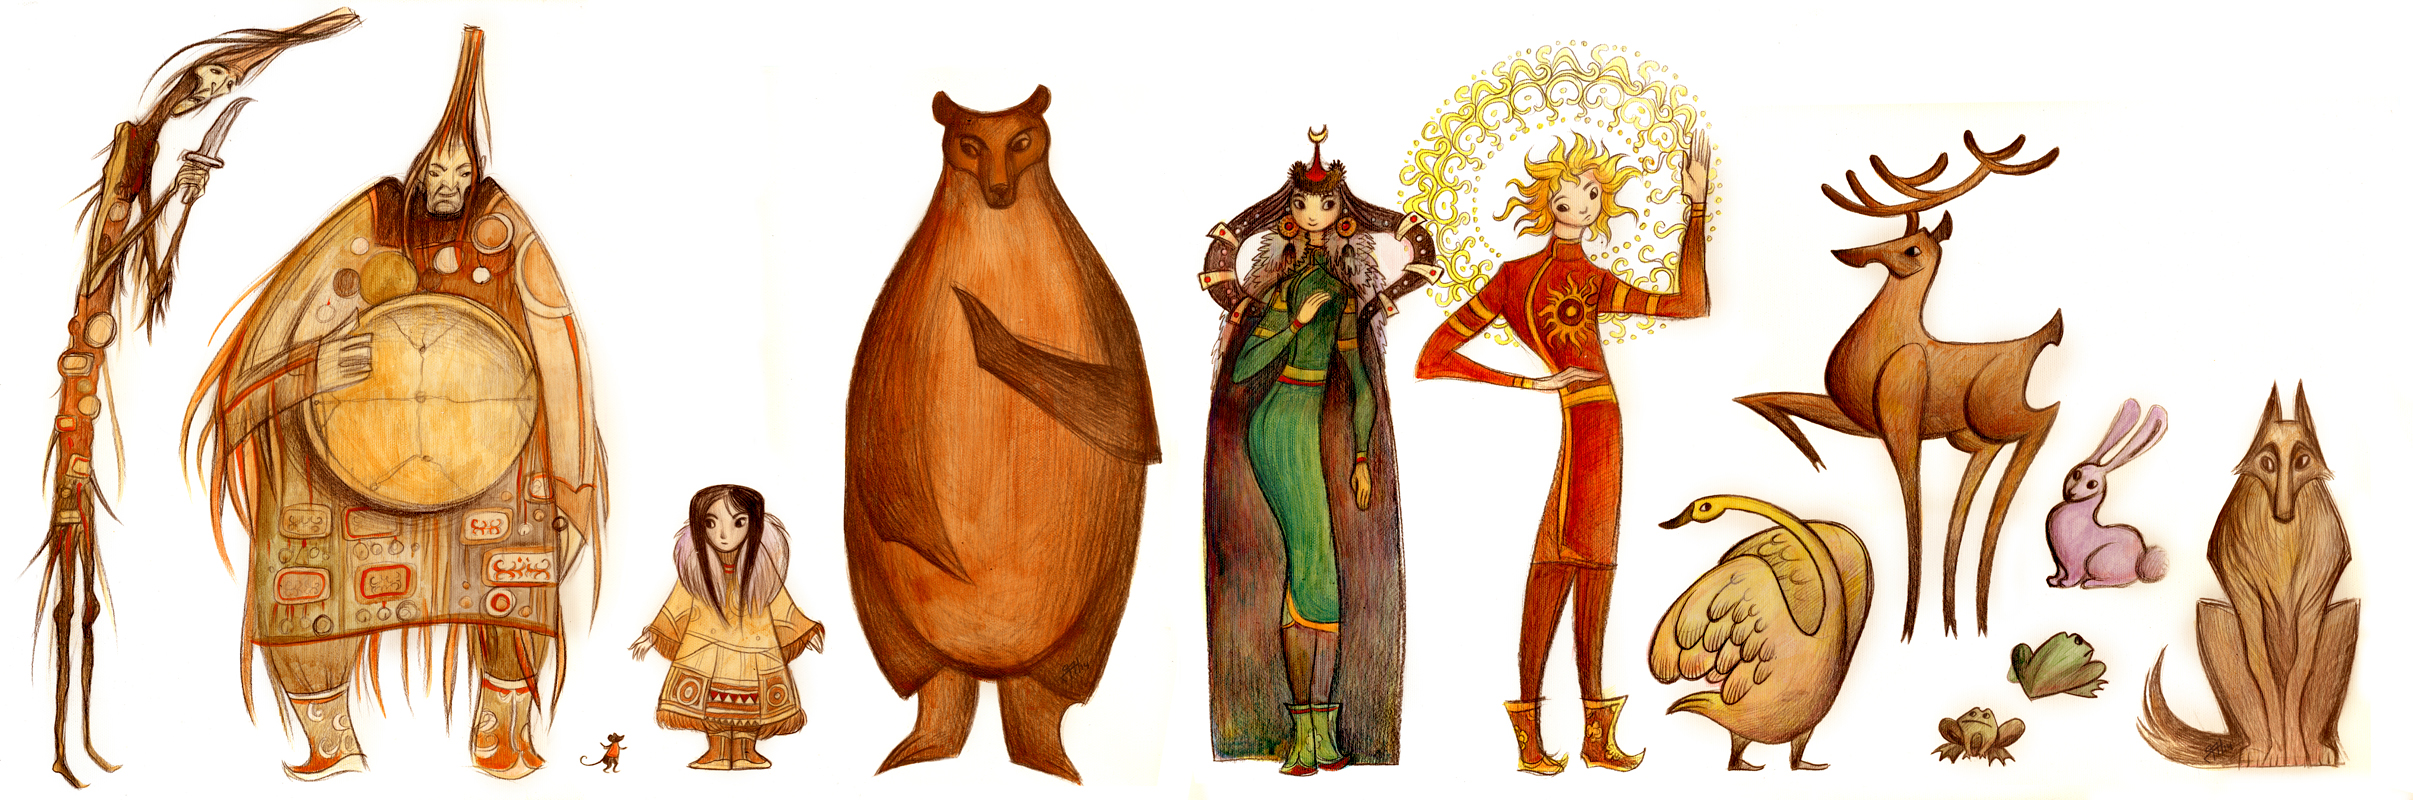 Siberian  tale characters by POISON-FREE